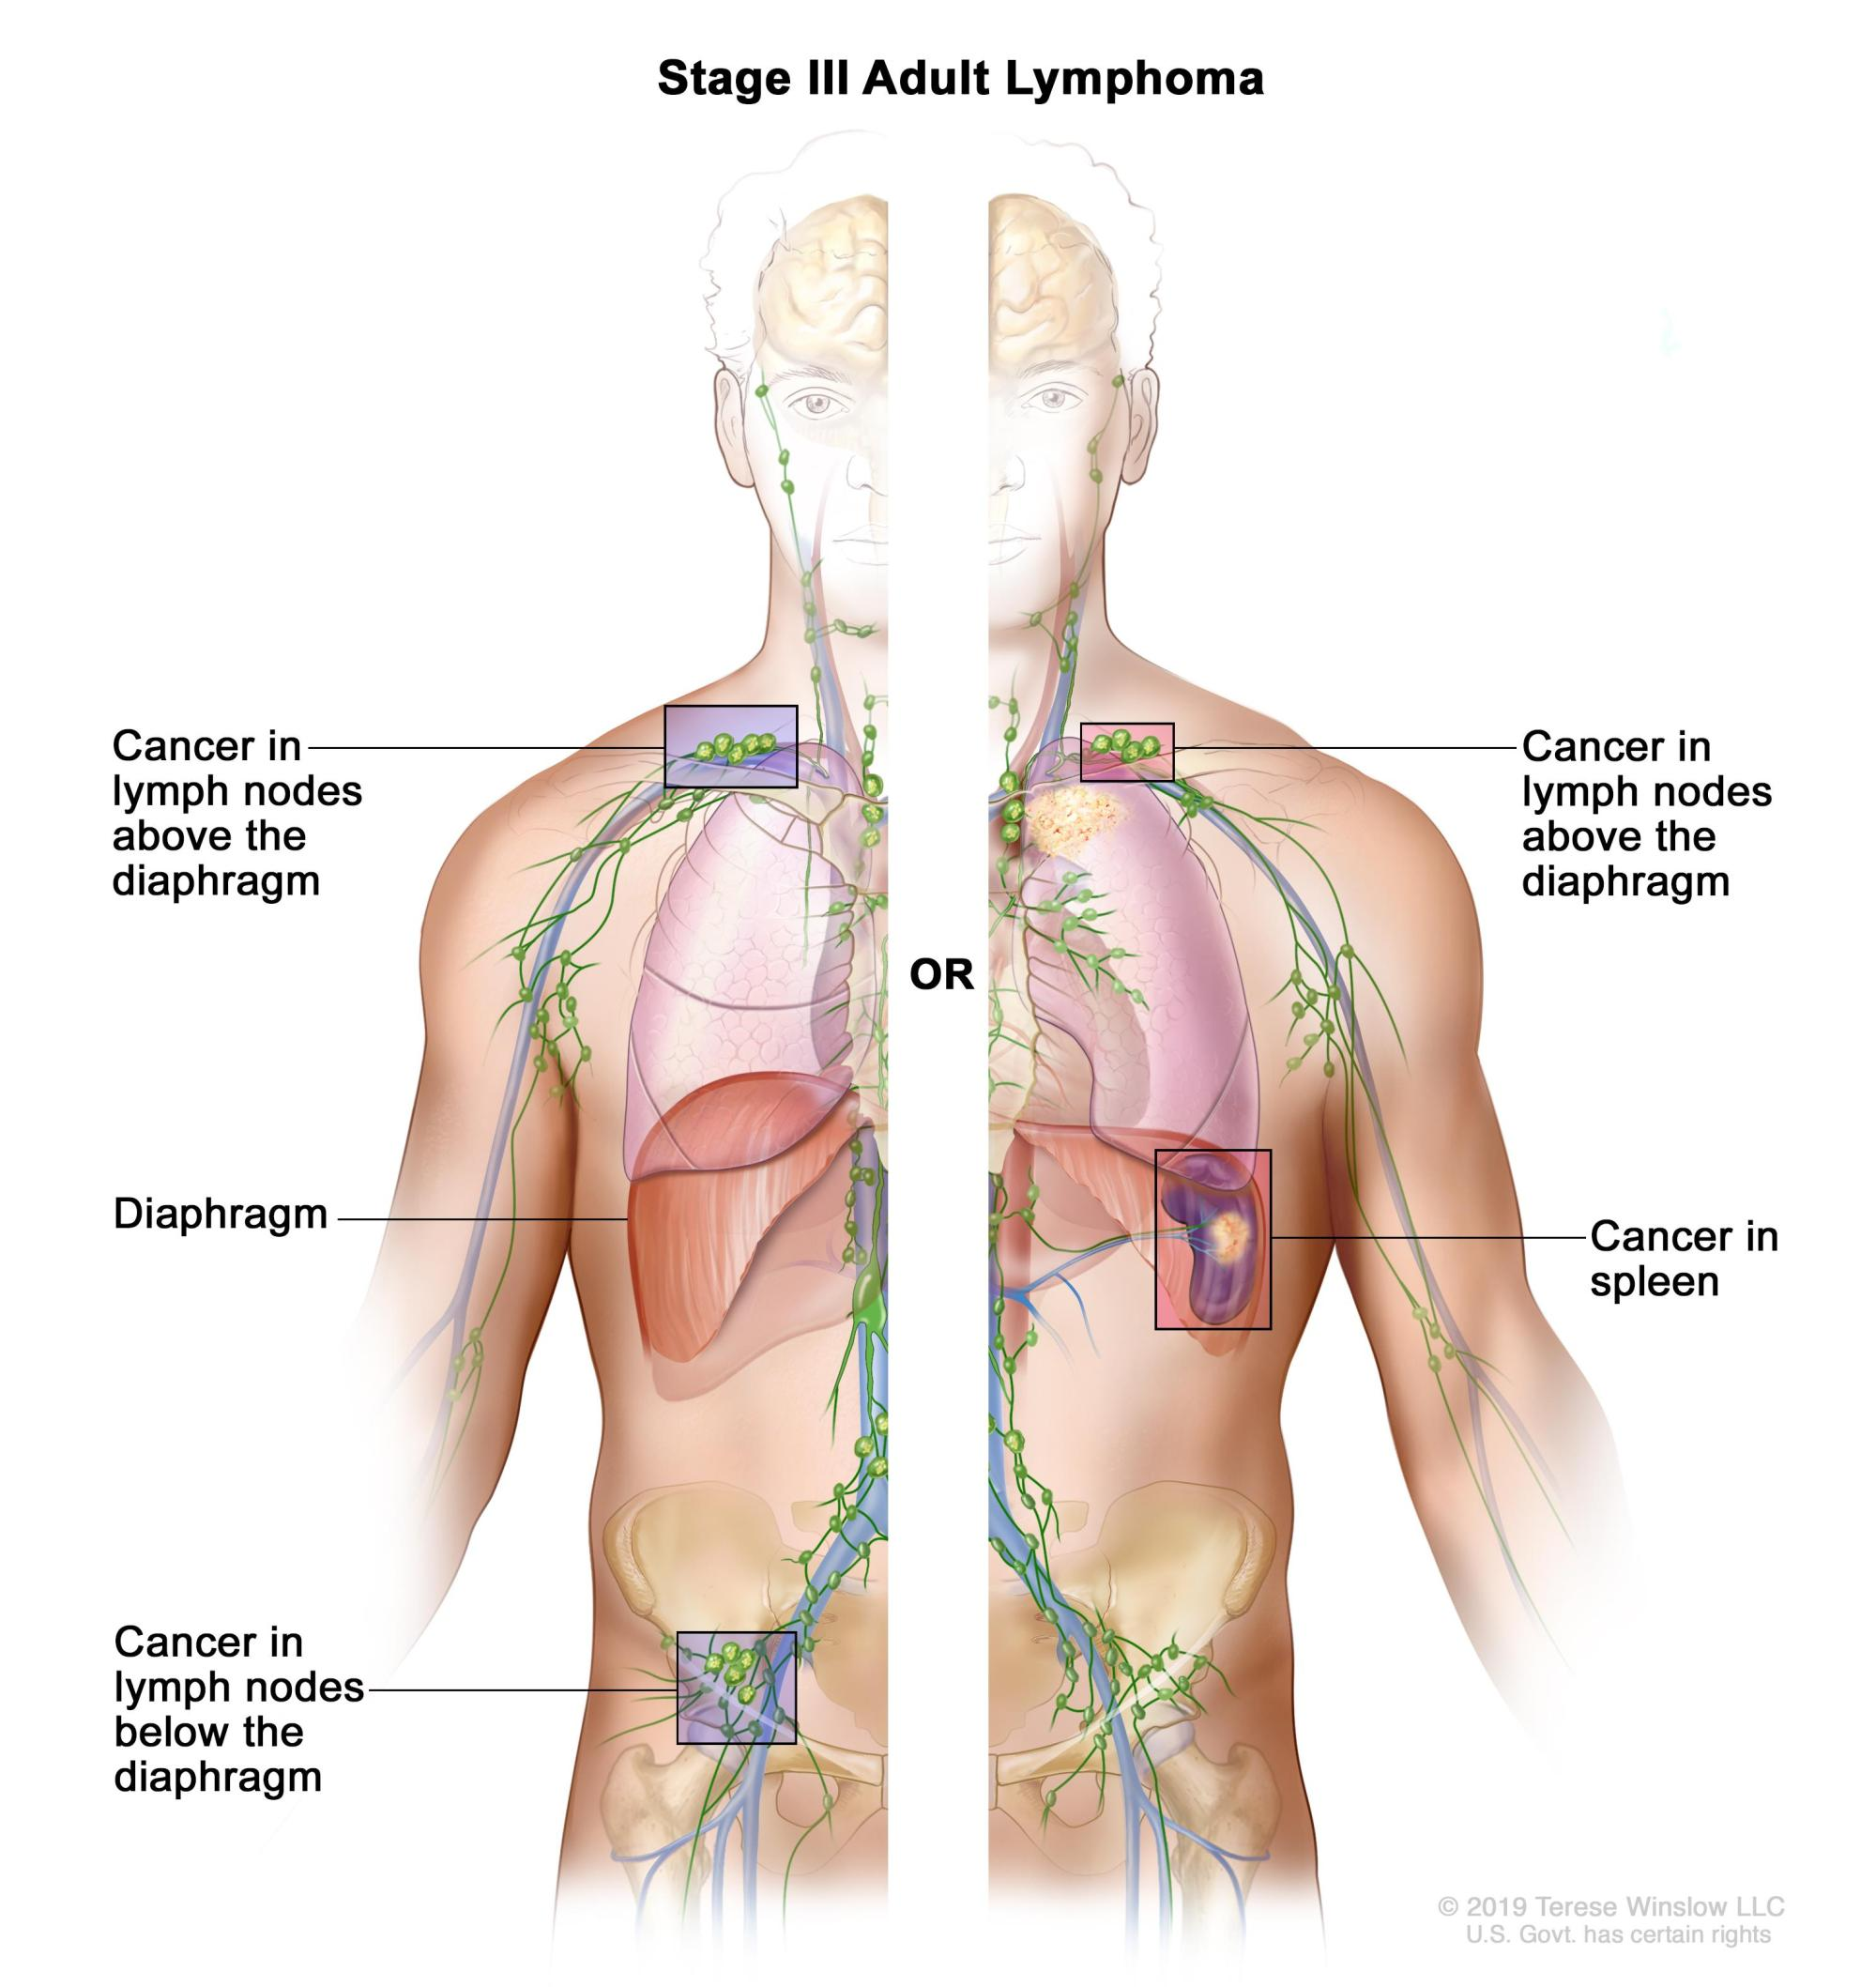 hight resolution of cancer is found in groups of lymph nodes both above and below the diaphragm or in a group of lymph nodes above the diaphragm and in the spleen